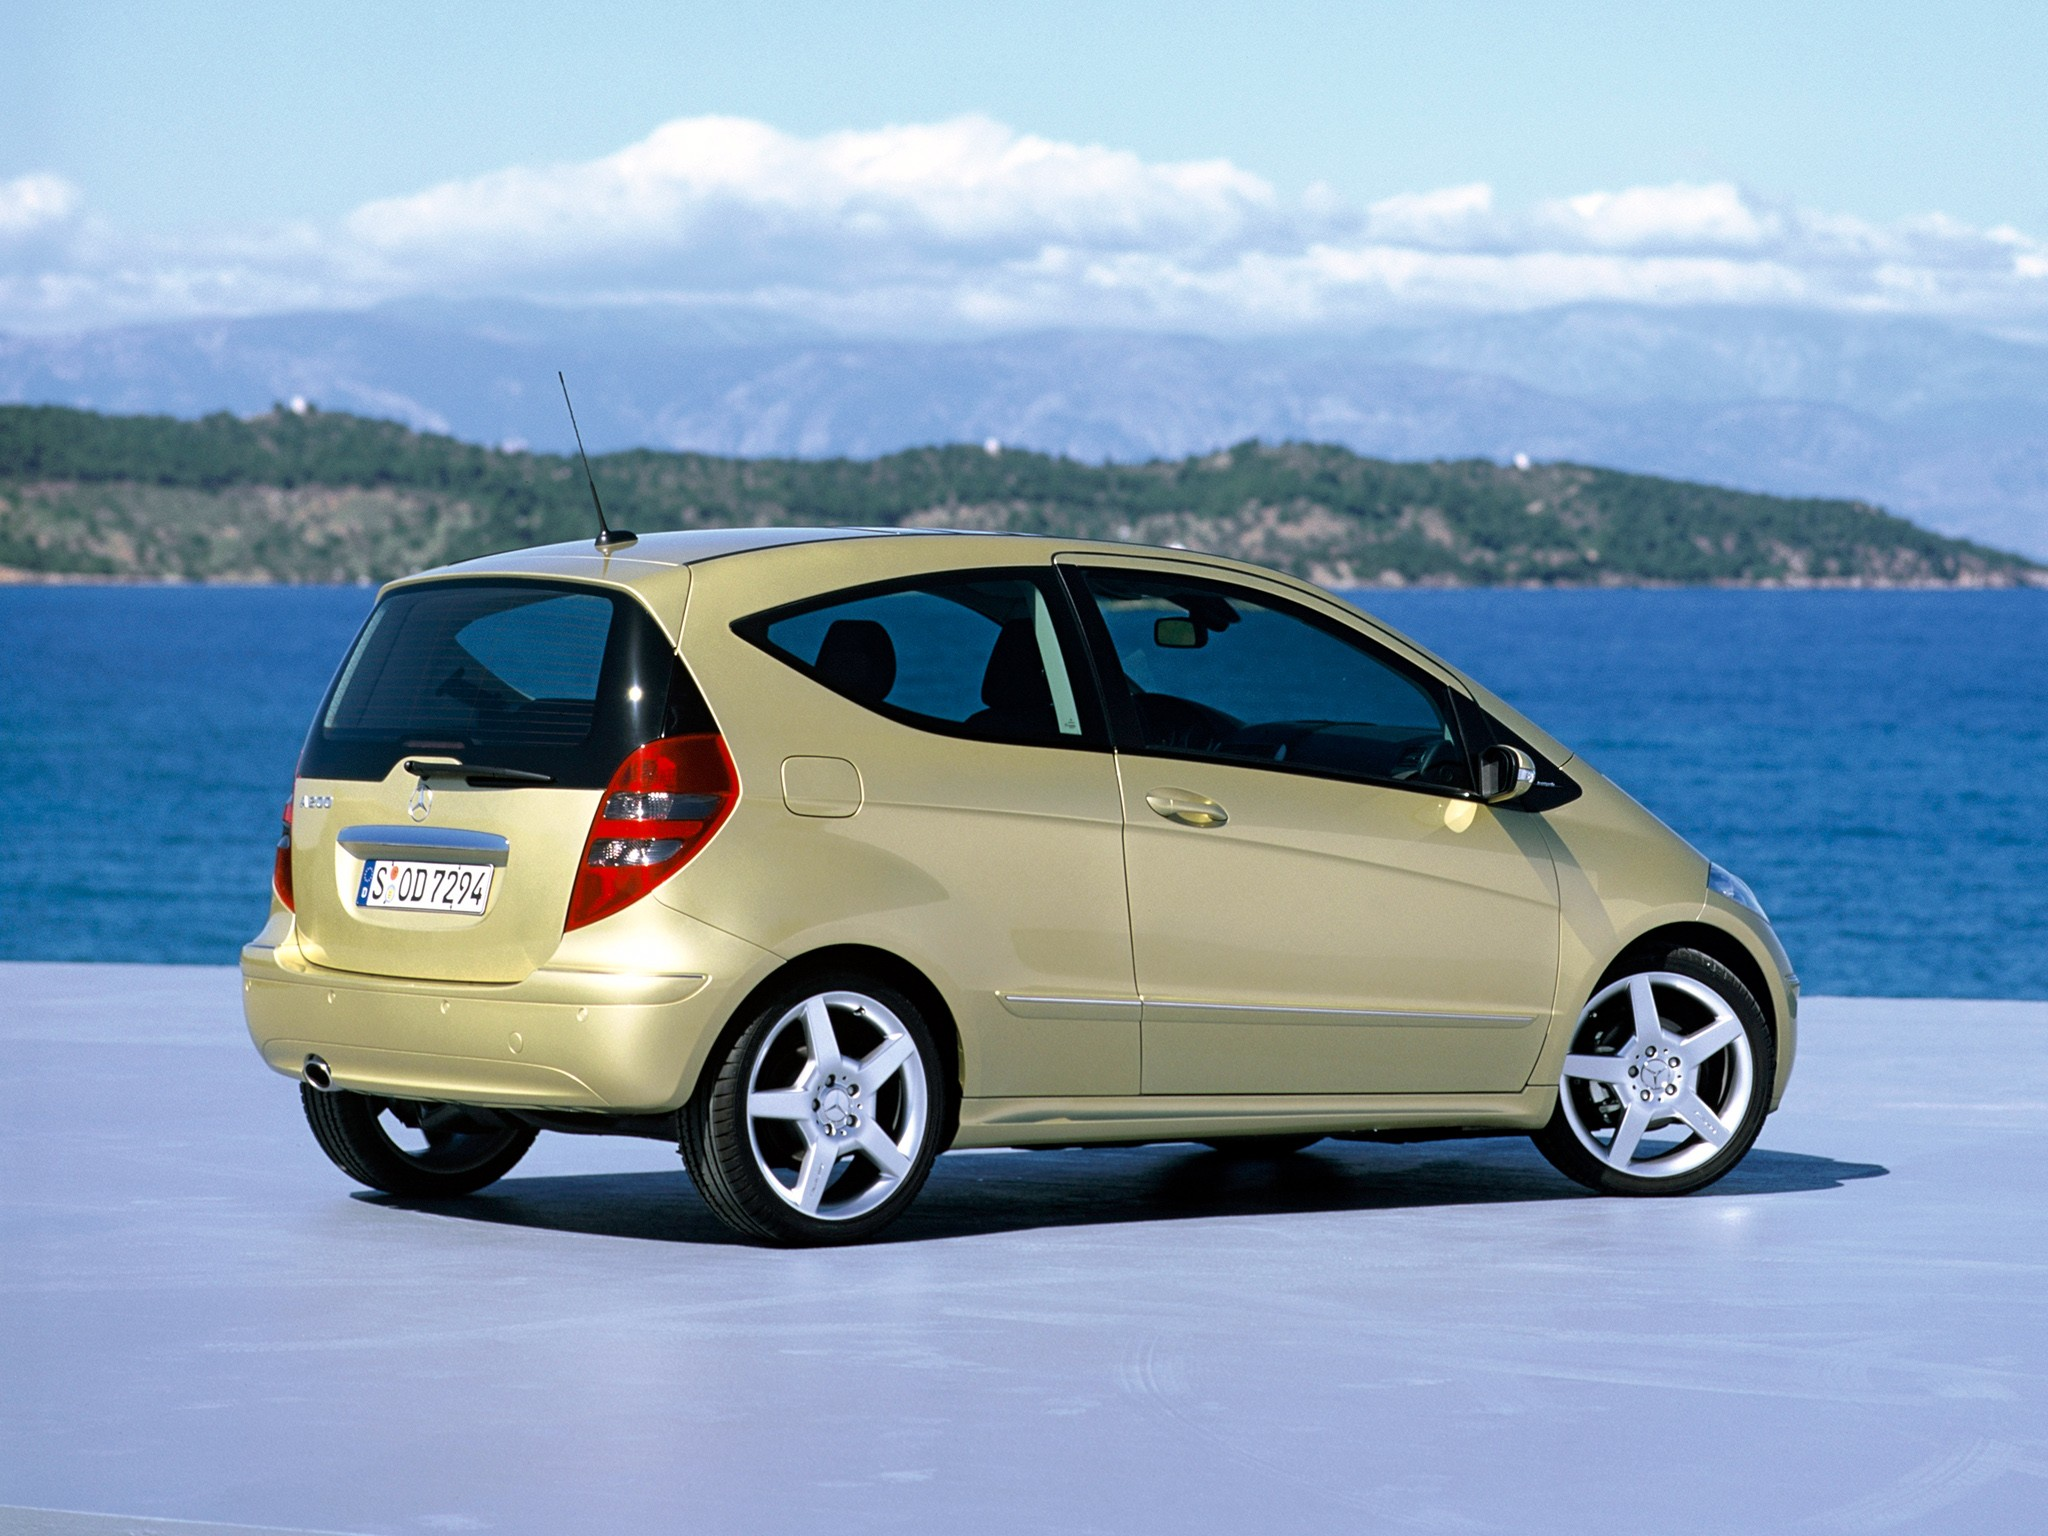 Mercedes-Benz A-klasse II (W169) 2004 - 2007 Hatchback 3 door #3